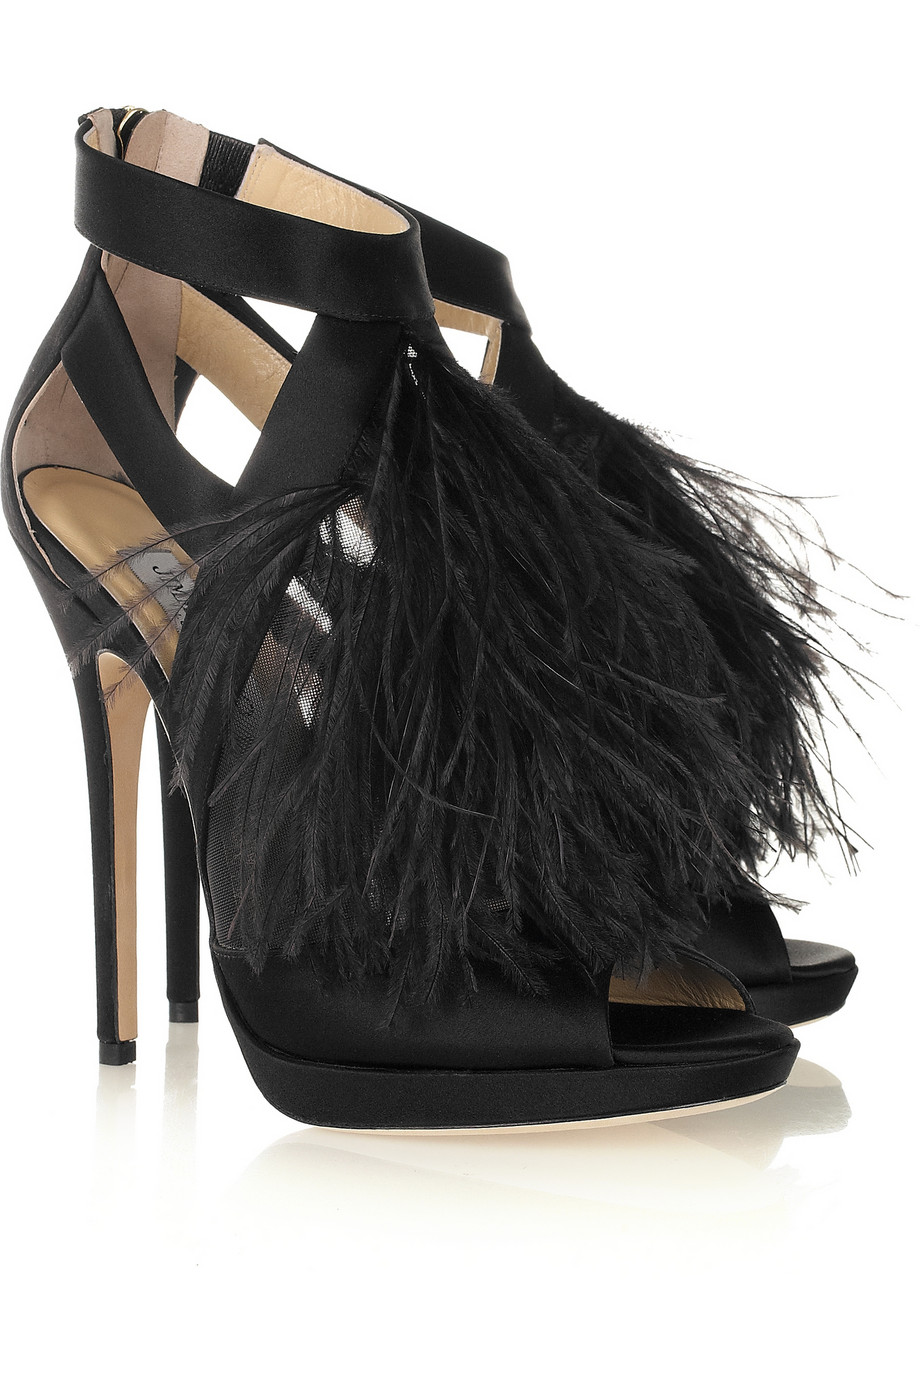 Jimmy Choo Teazer Ostrich Feather Satin Platform Sandals